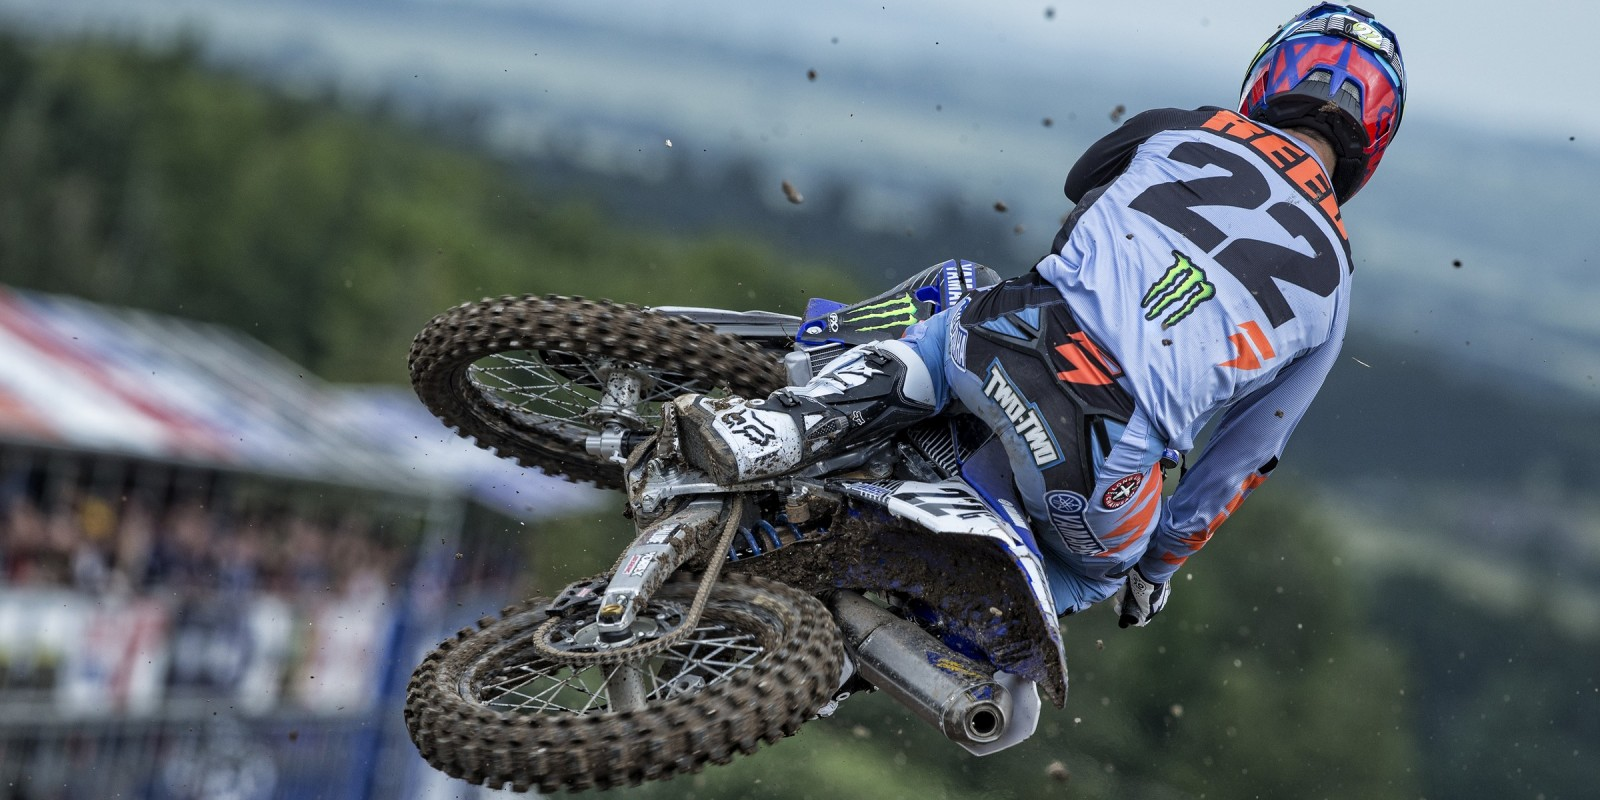 Chad Reed at the 2016 MXGP of Great Britain